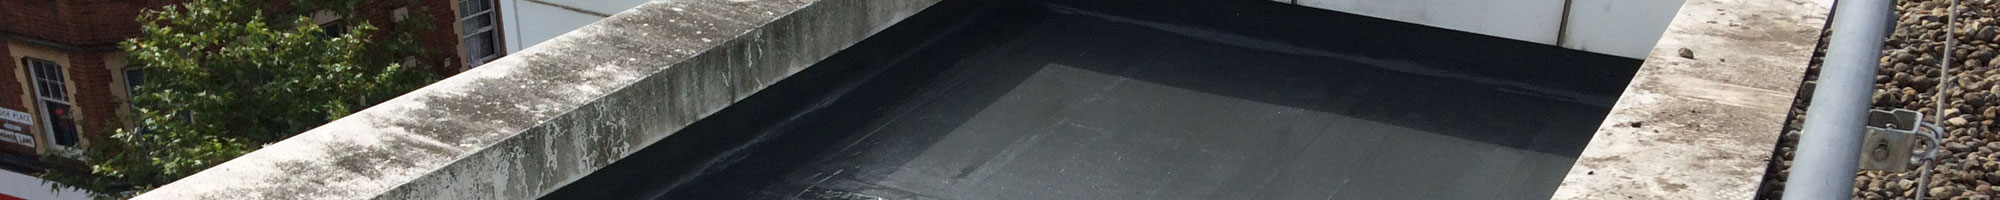 Cemplas - Banner - Liquid-Applied Roofing - Image 4